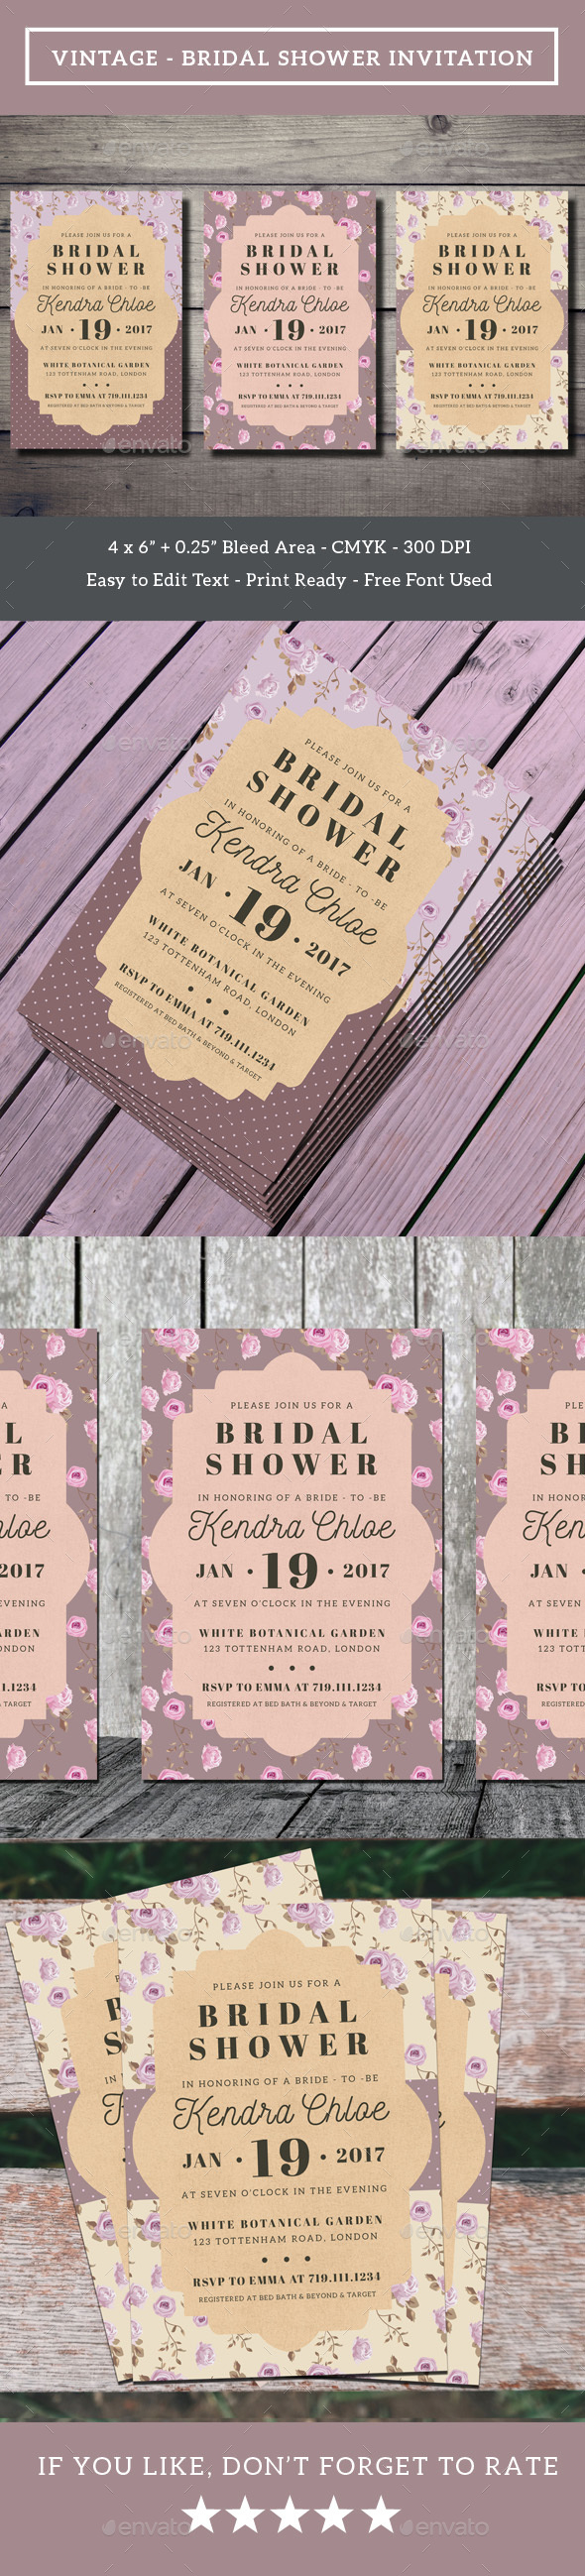 Vintage - Bridal Shower Invitation